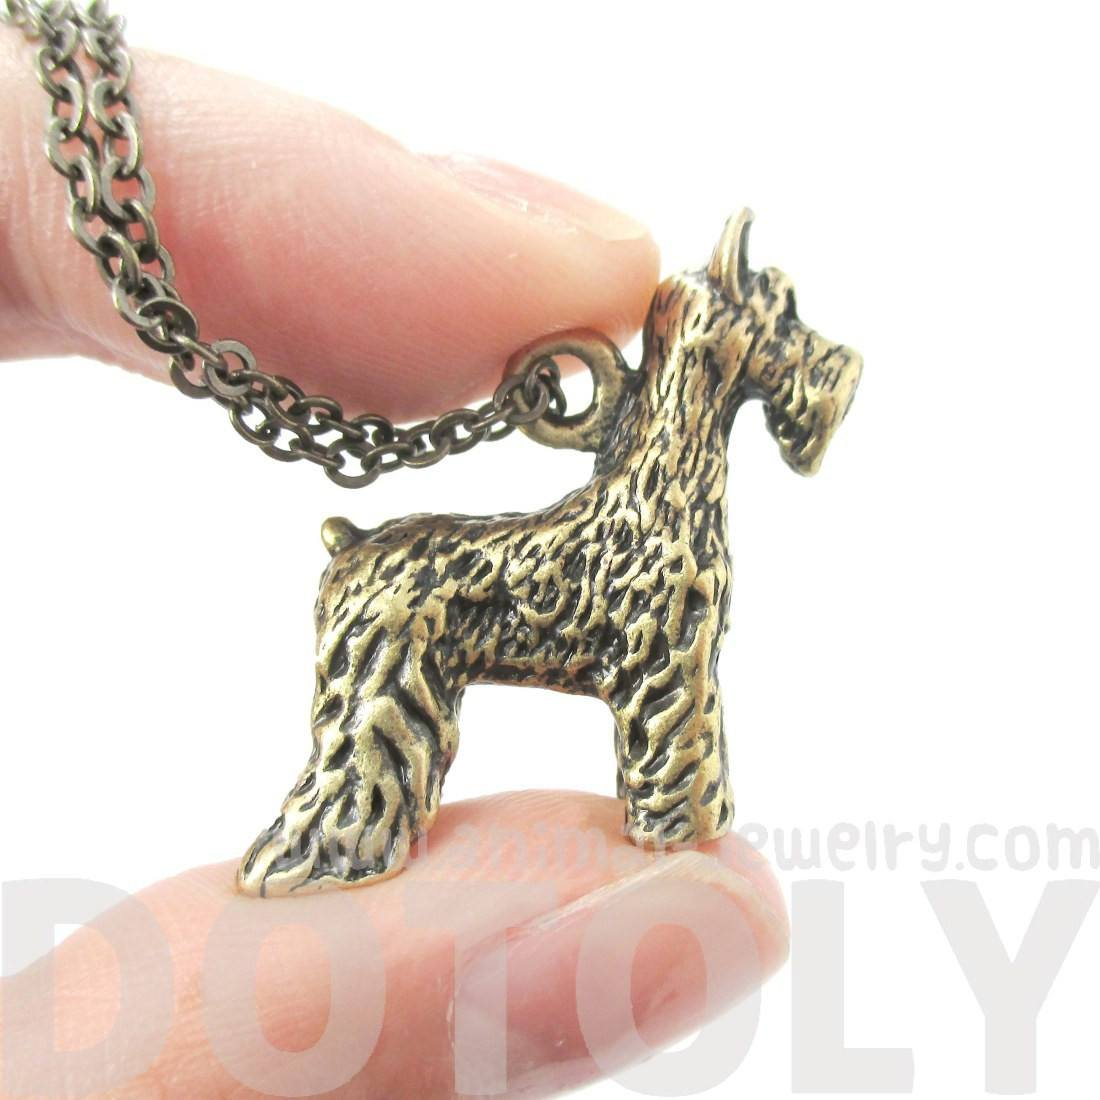 Realistic Schnauzer Puppy Dog Shaped Animal Pendant Necklace in Brass